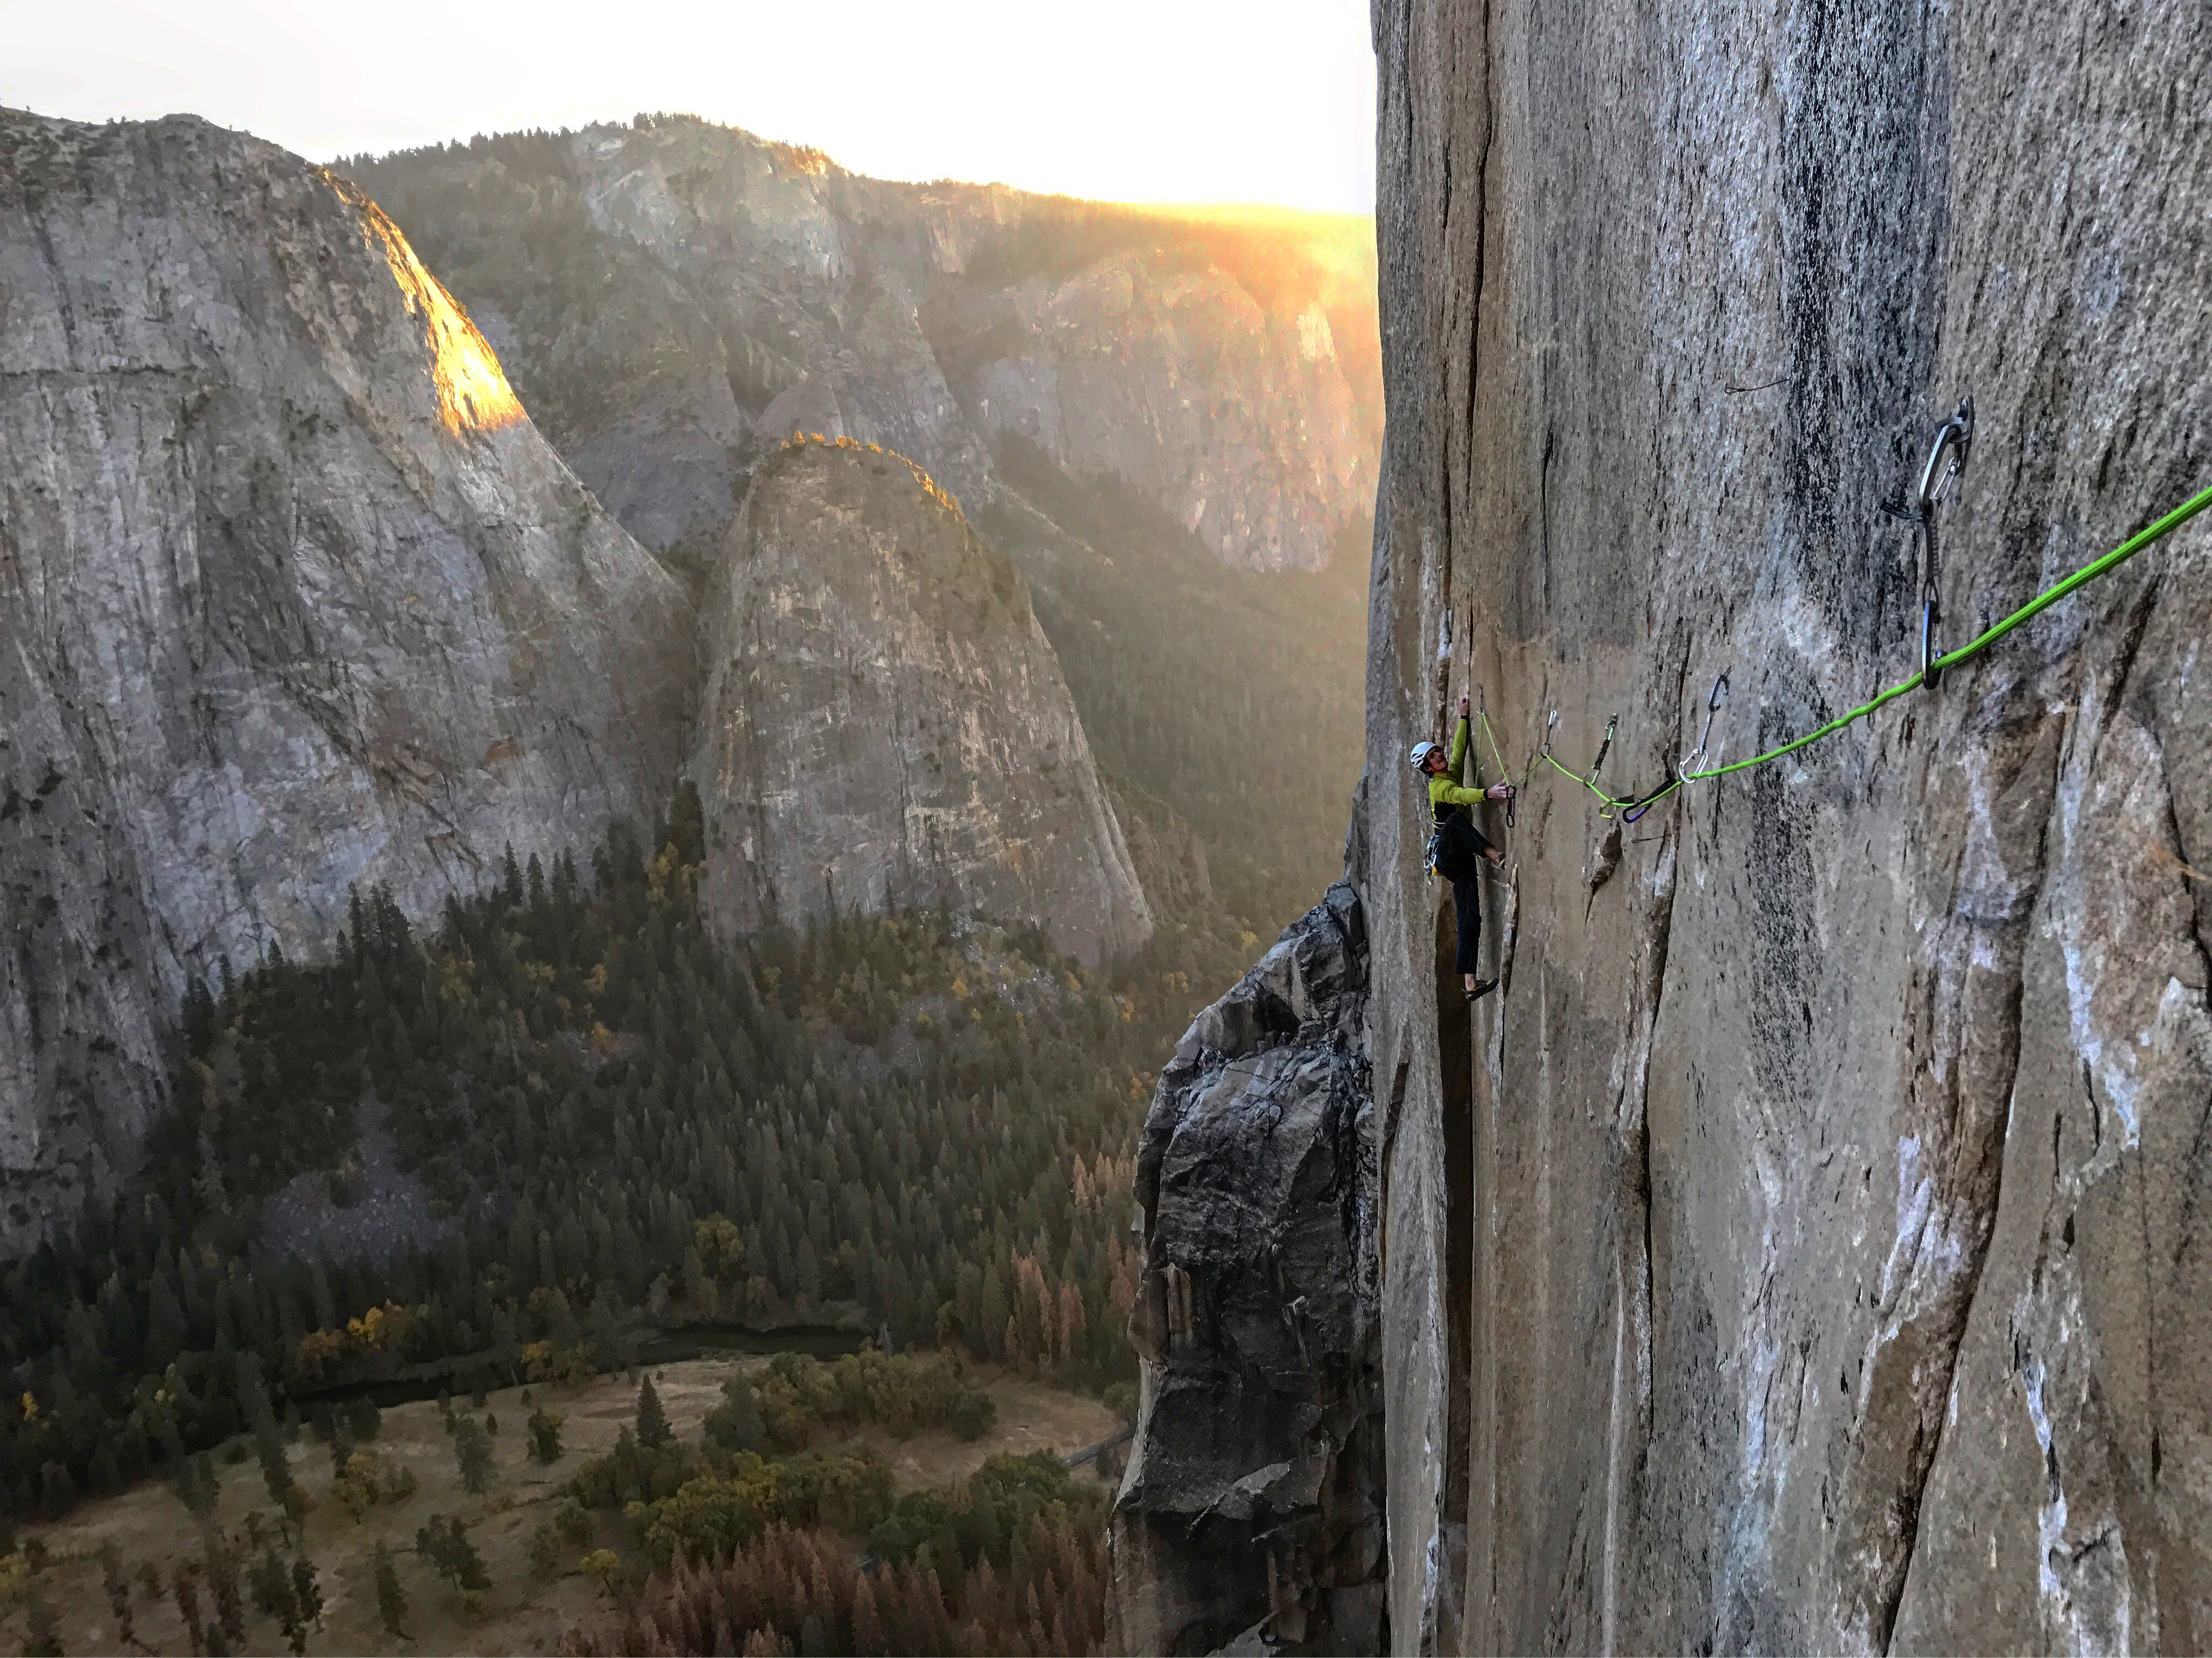 Adam Ondra on climbing Yosemite for the first time